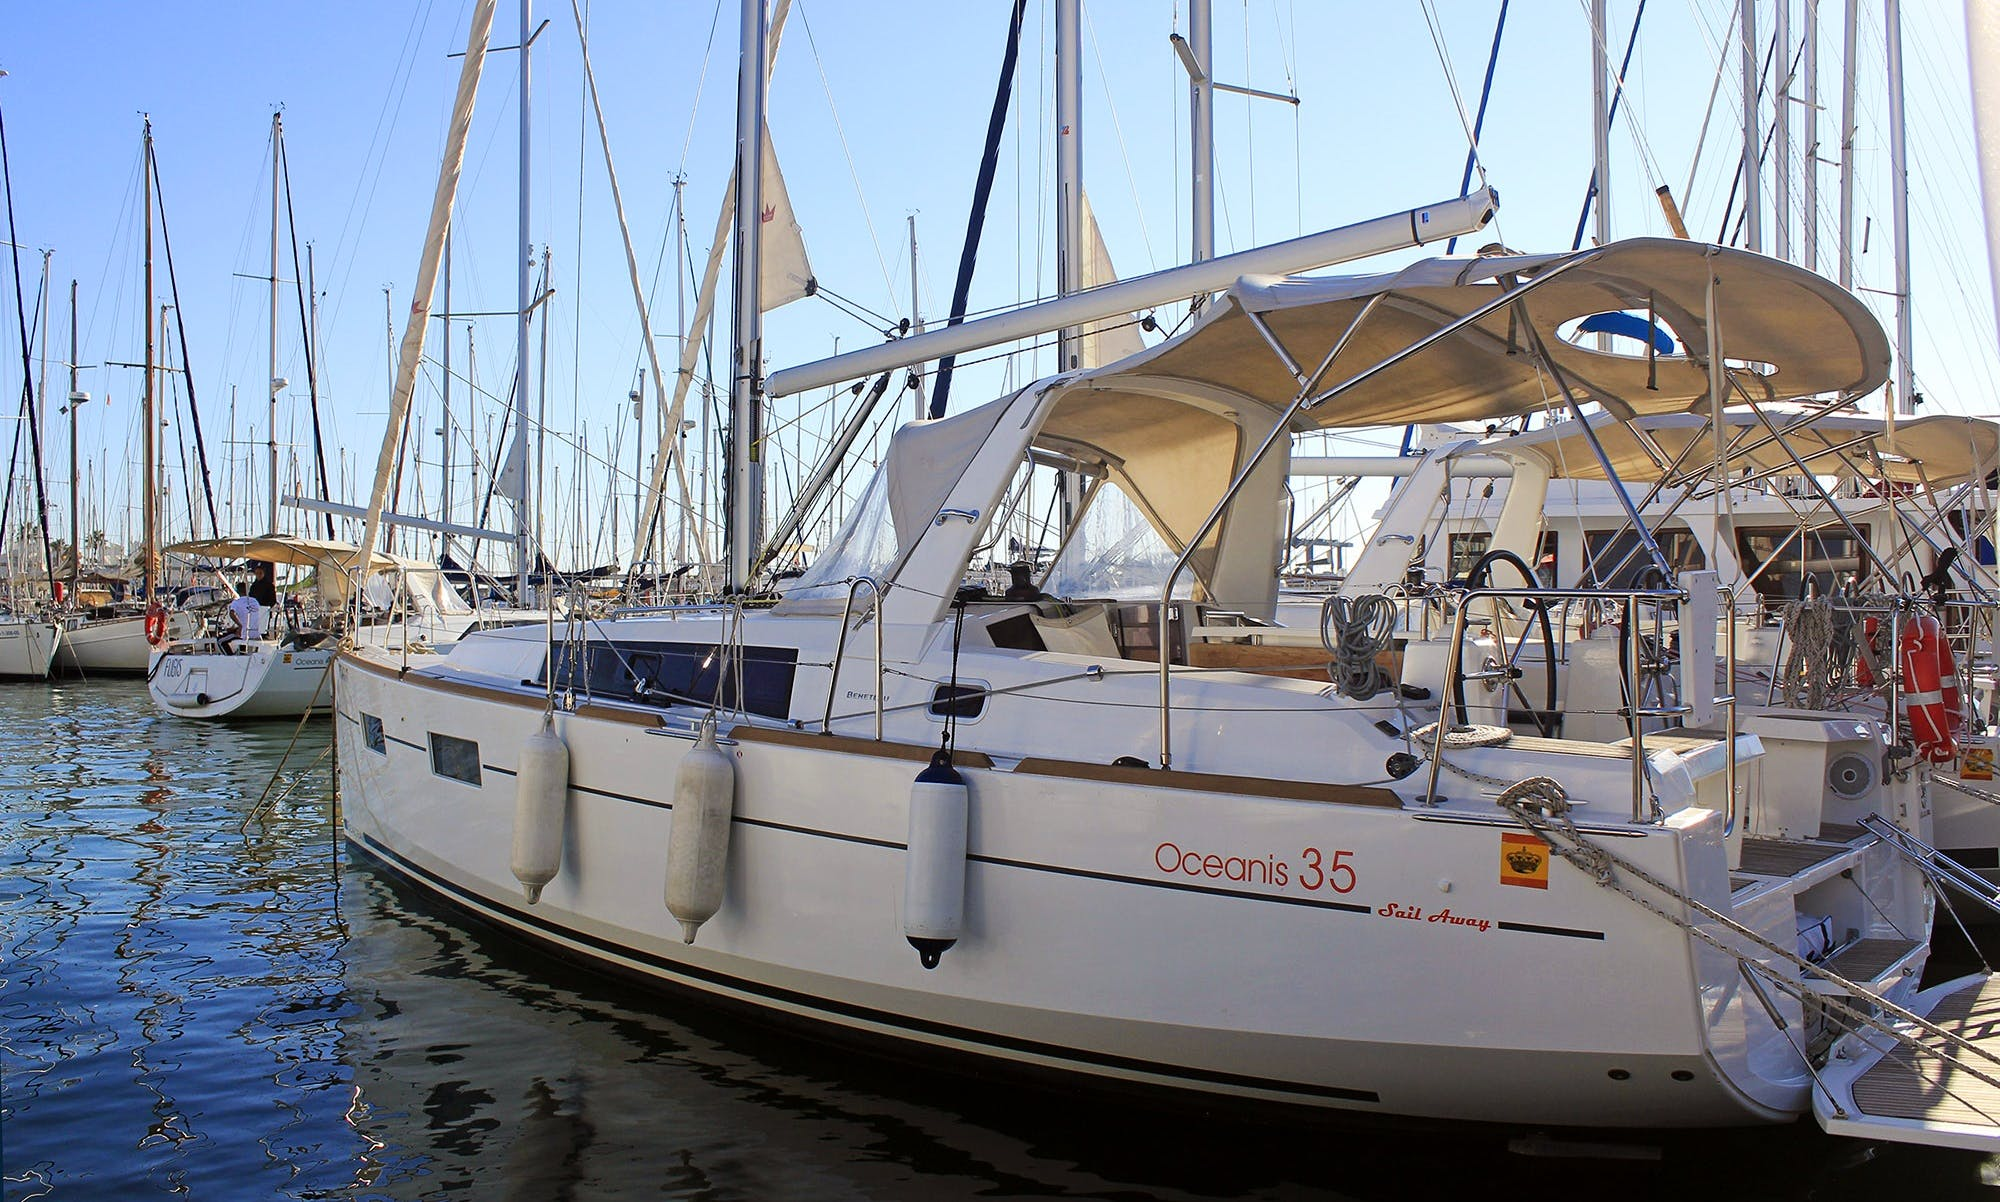 Captained & Bareboat Charters on this Beneteau Oceanis 35